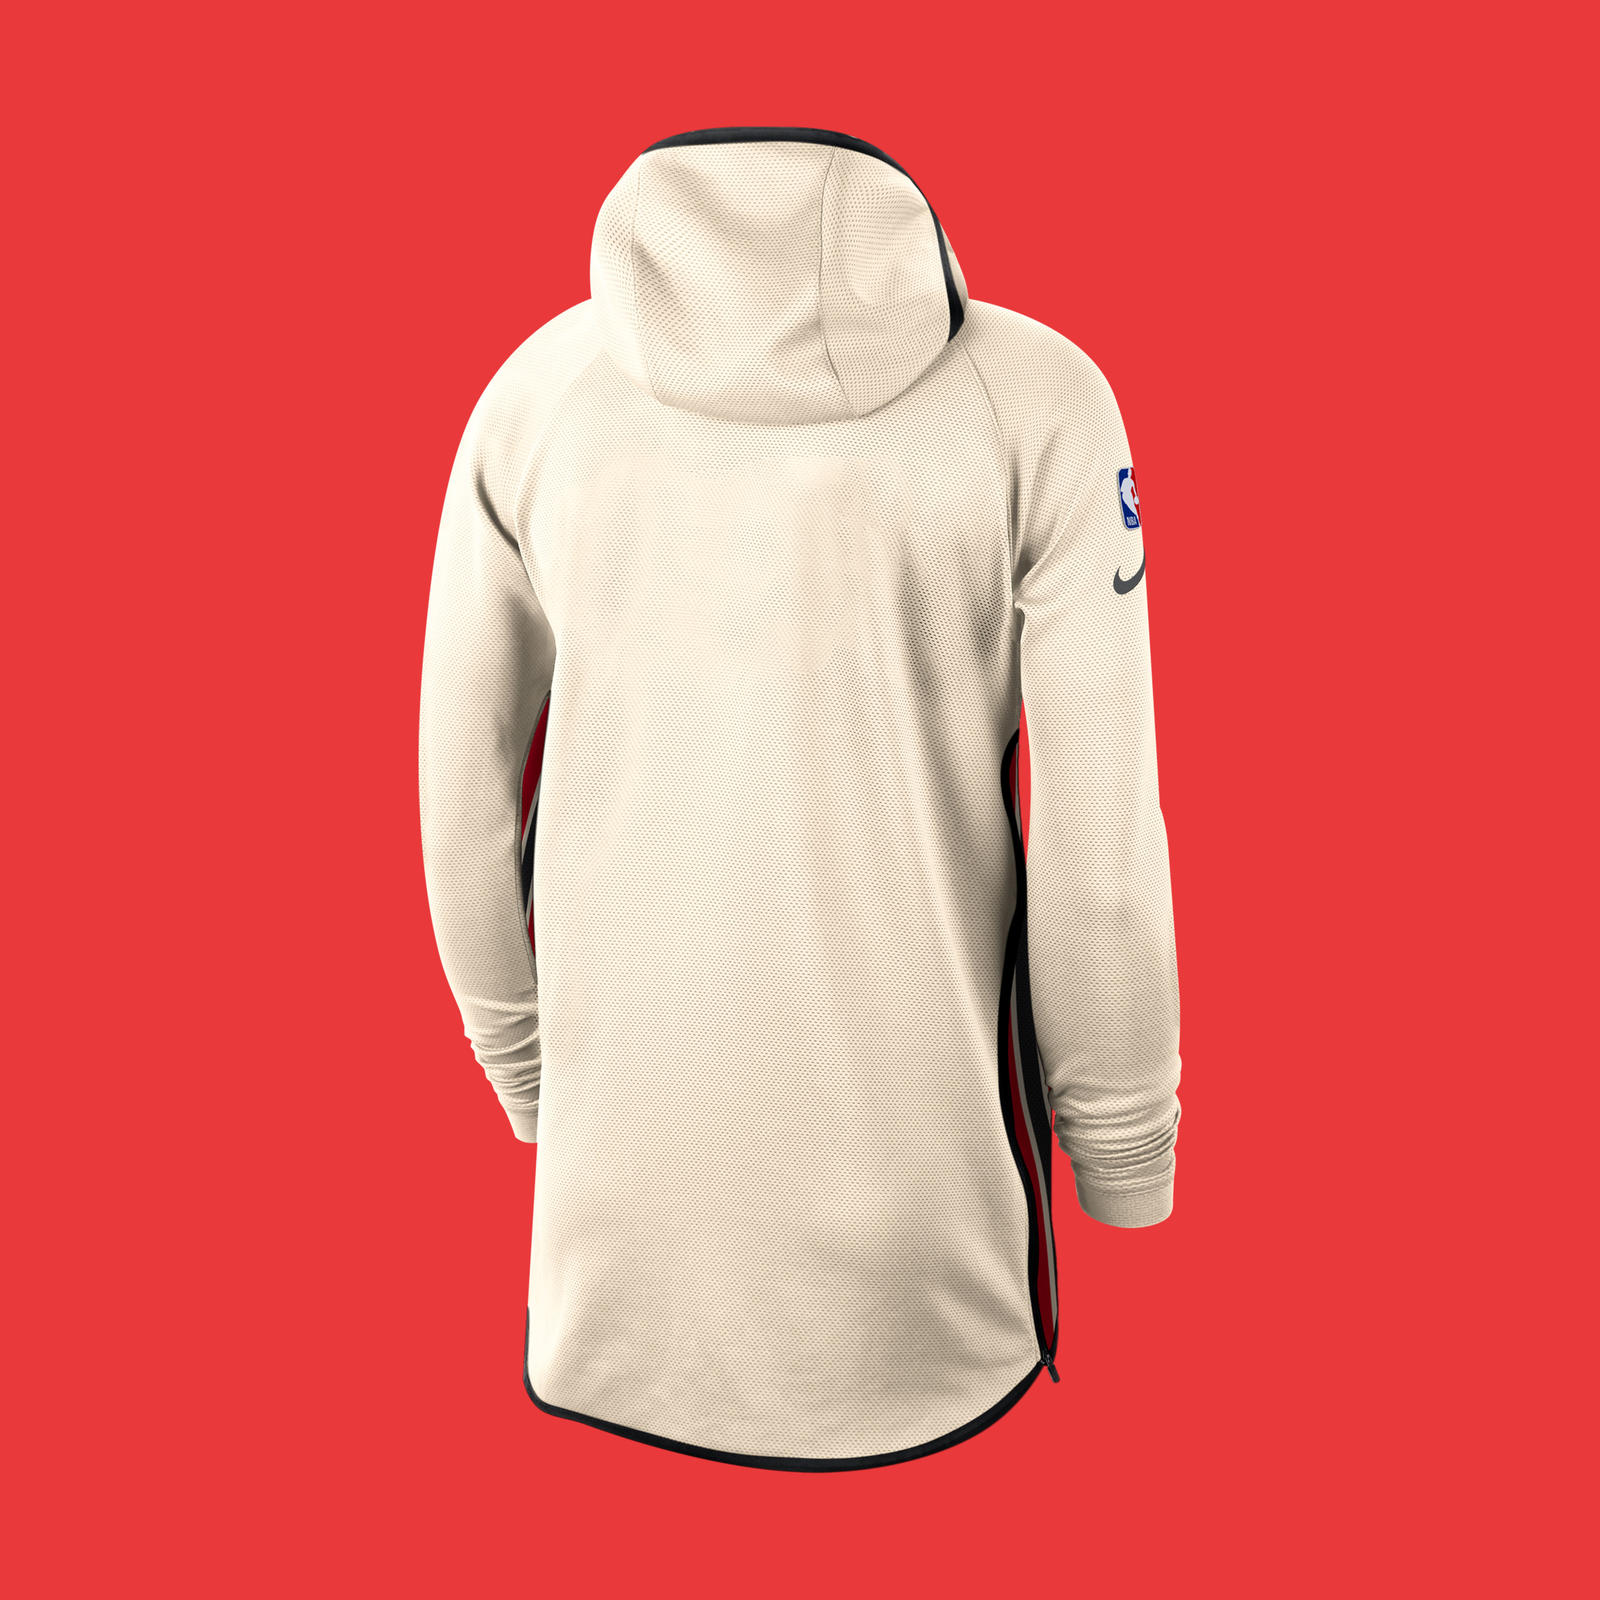 Nike NBA Earned Edition Showtime Hoodies 2019-20 Official Images 10